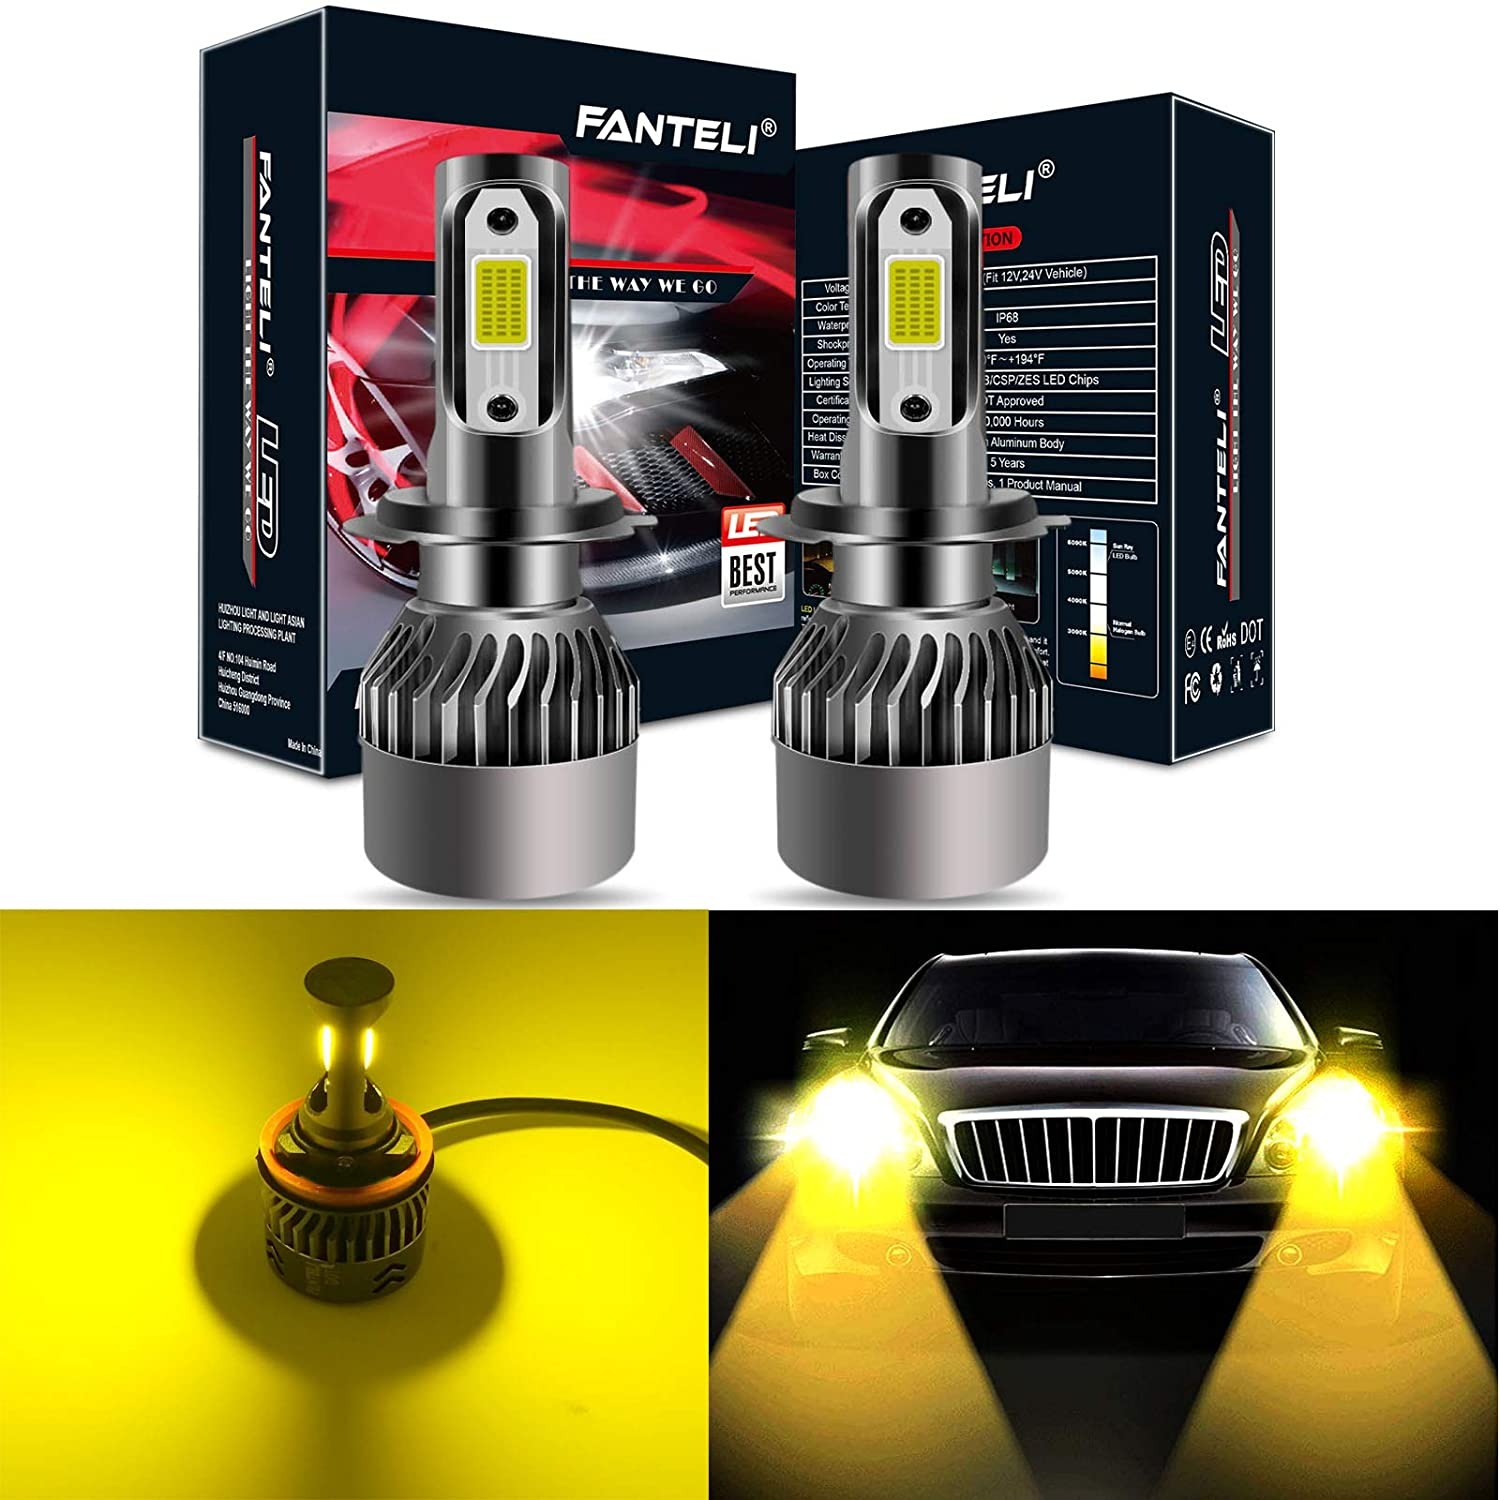 FANTELI H7 3000K Yellow LED Headlight Bulbs All-in-One Conversion Kit 72W 8000LM High Beam//Low Beam//Fog Lights Extremely Bright